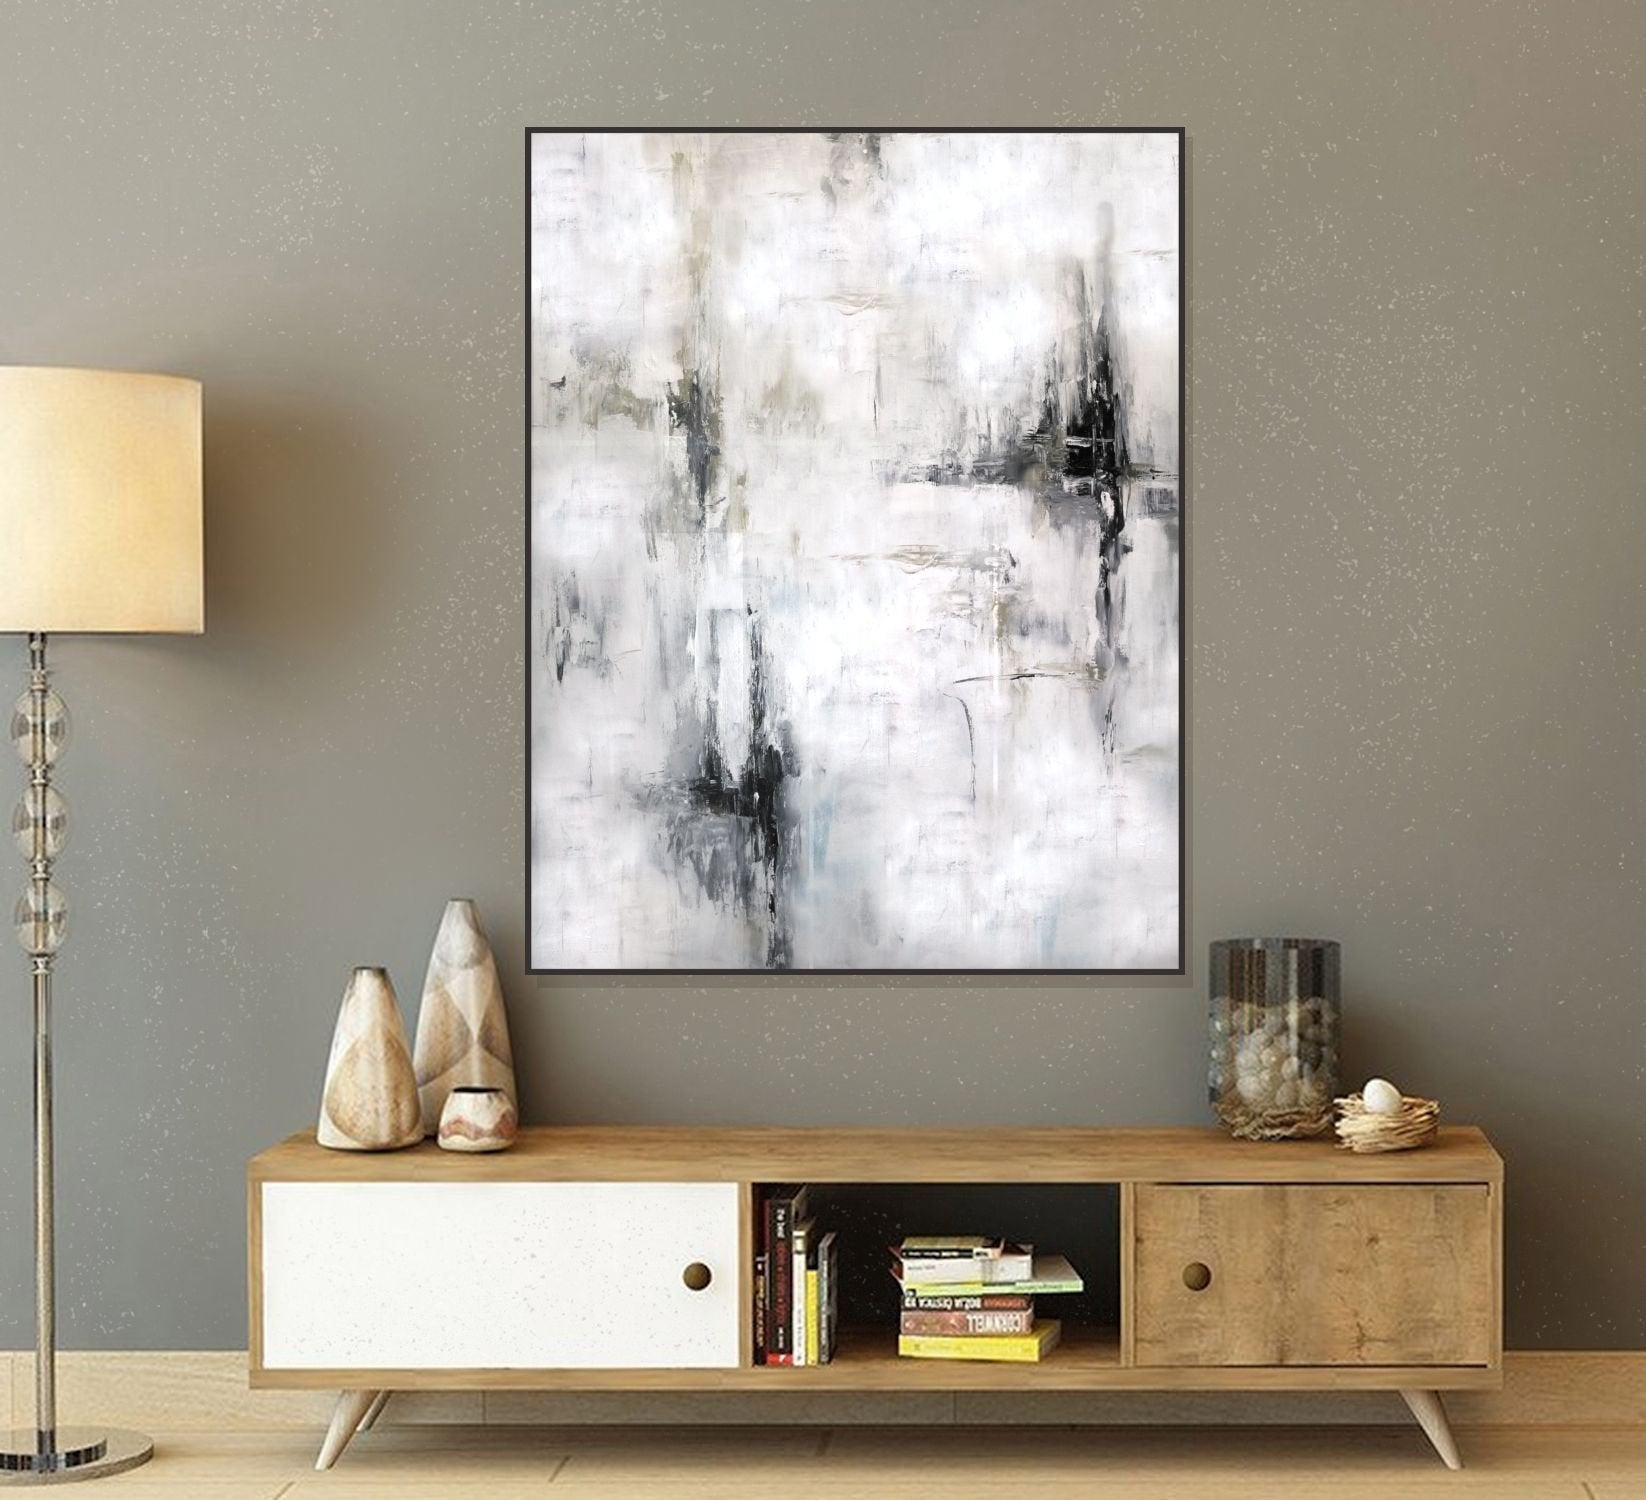 Extra Large Wall Art - Original Abstract Painting - White Artwork  Minimalist Landscape - Modern Industrial Wall Decor- White Abstract Art intended for Large Modern Industrial Wall Decor (Image 4 of 30)